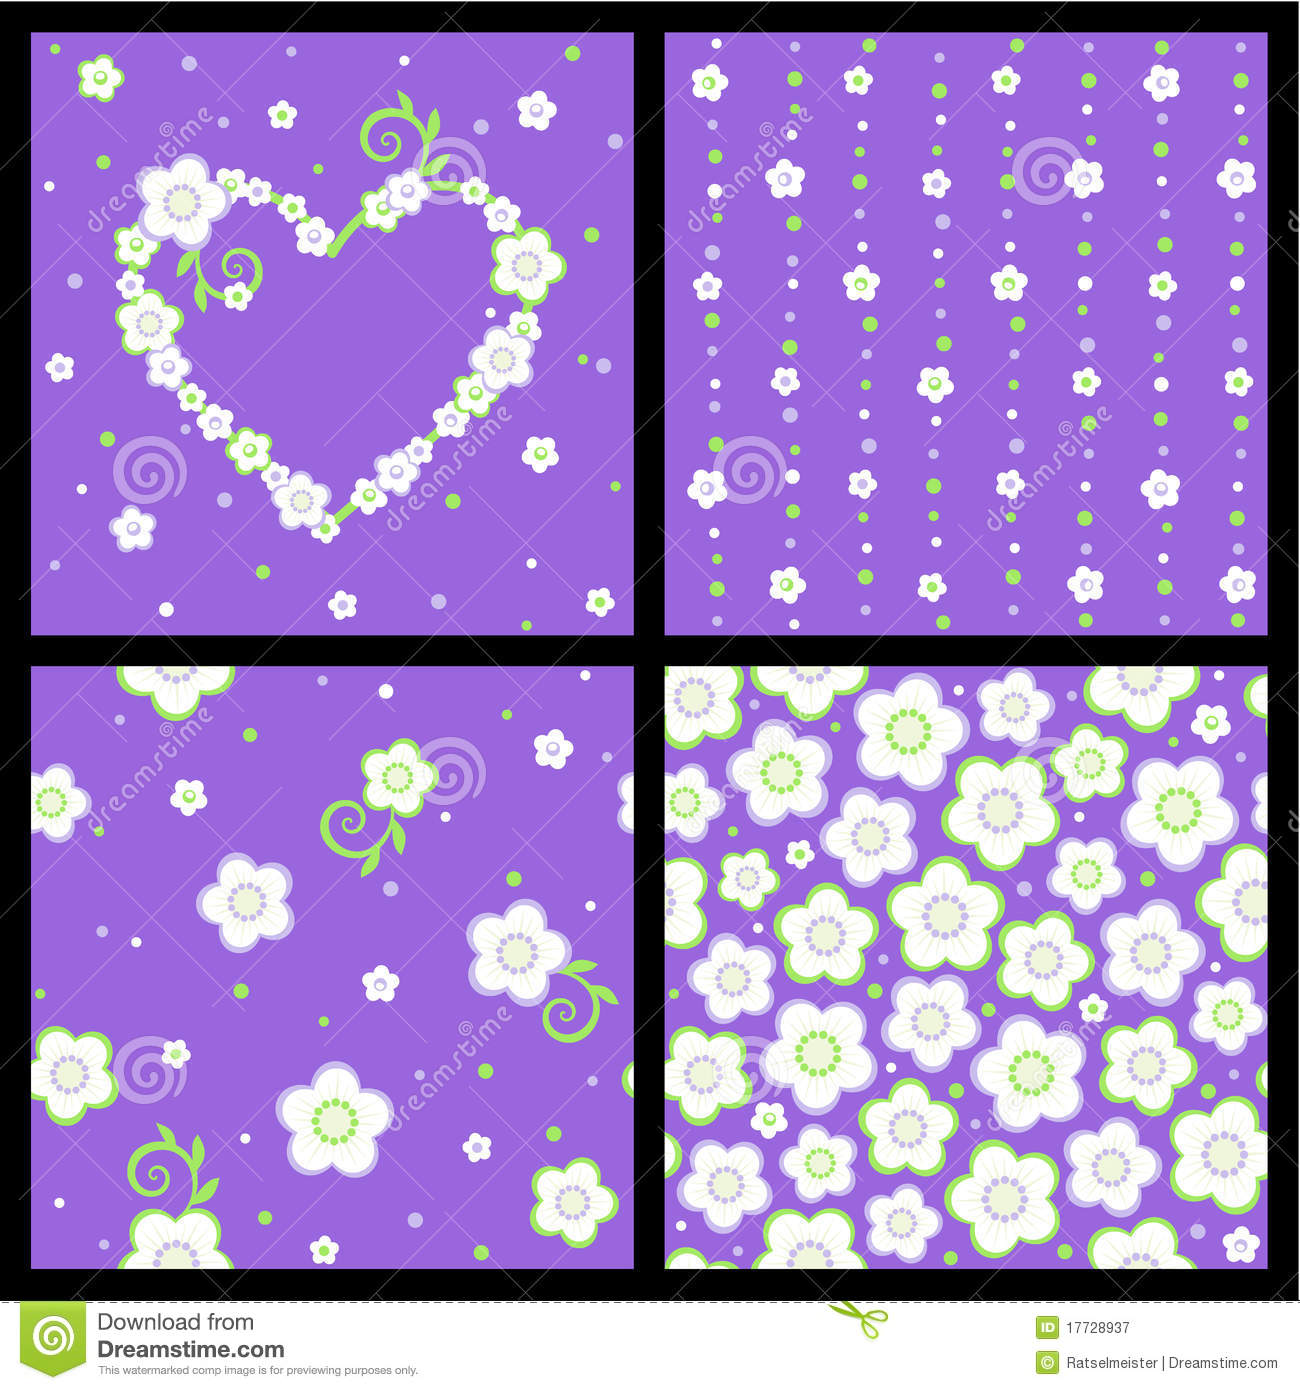 Seamless spring and Valentine floral patterns